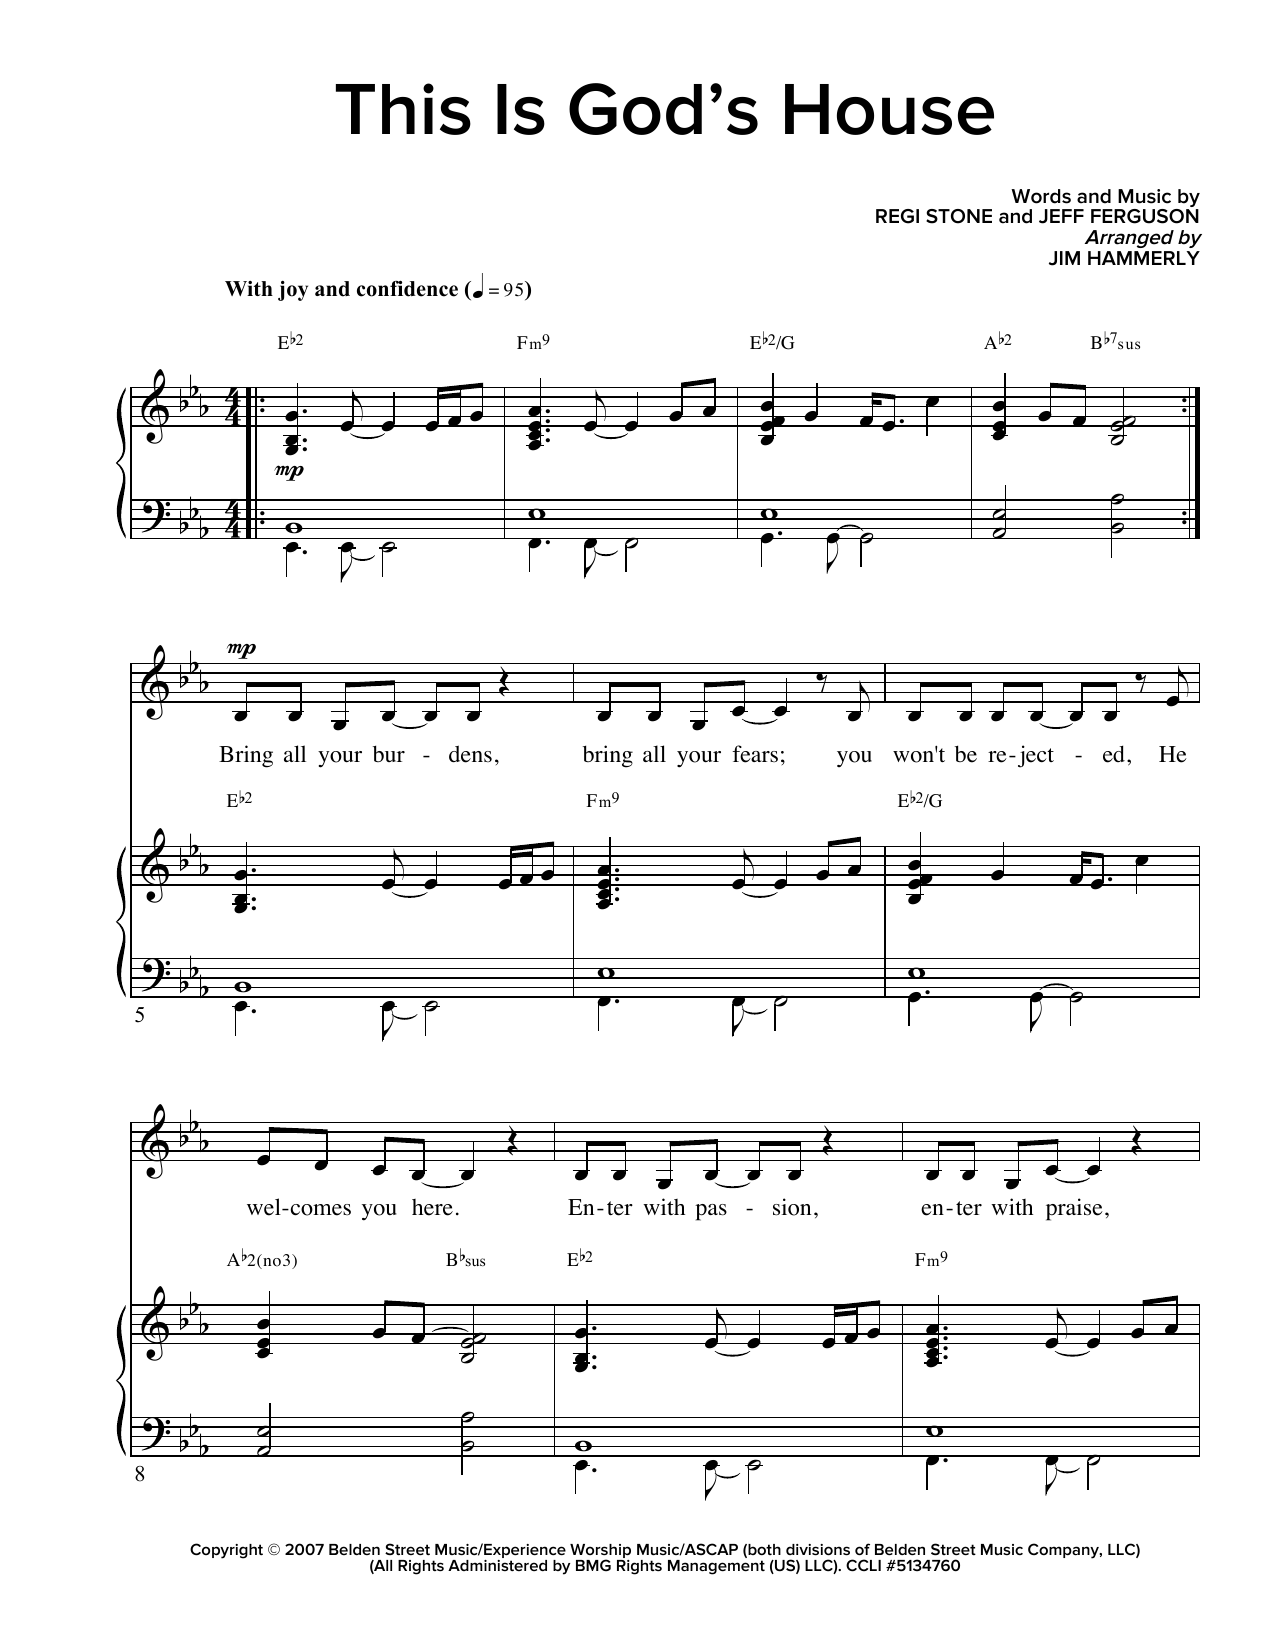 This Is God's House Sheet Music